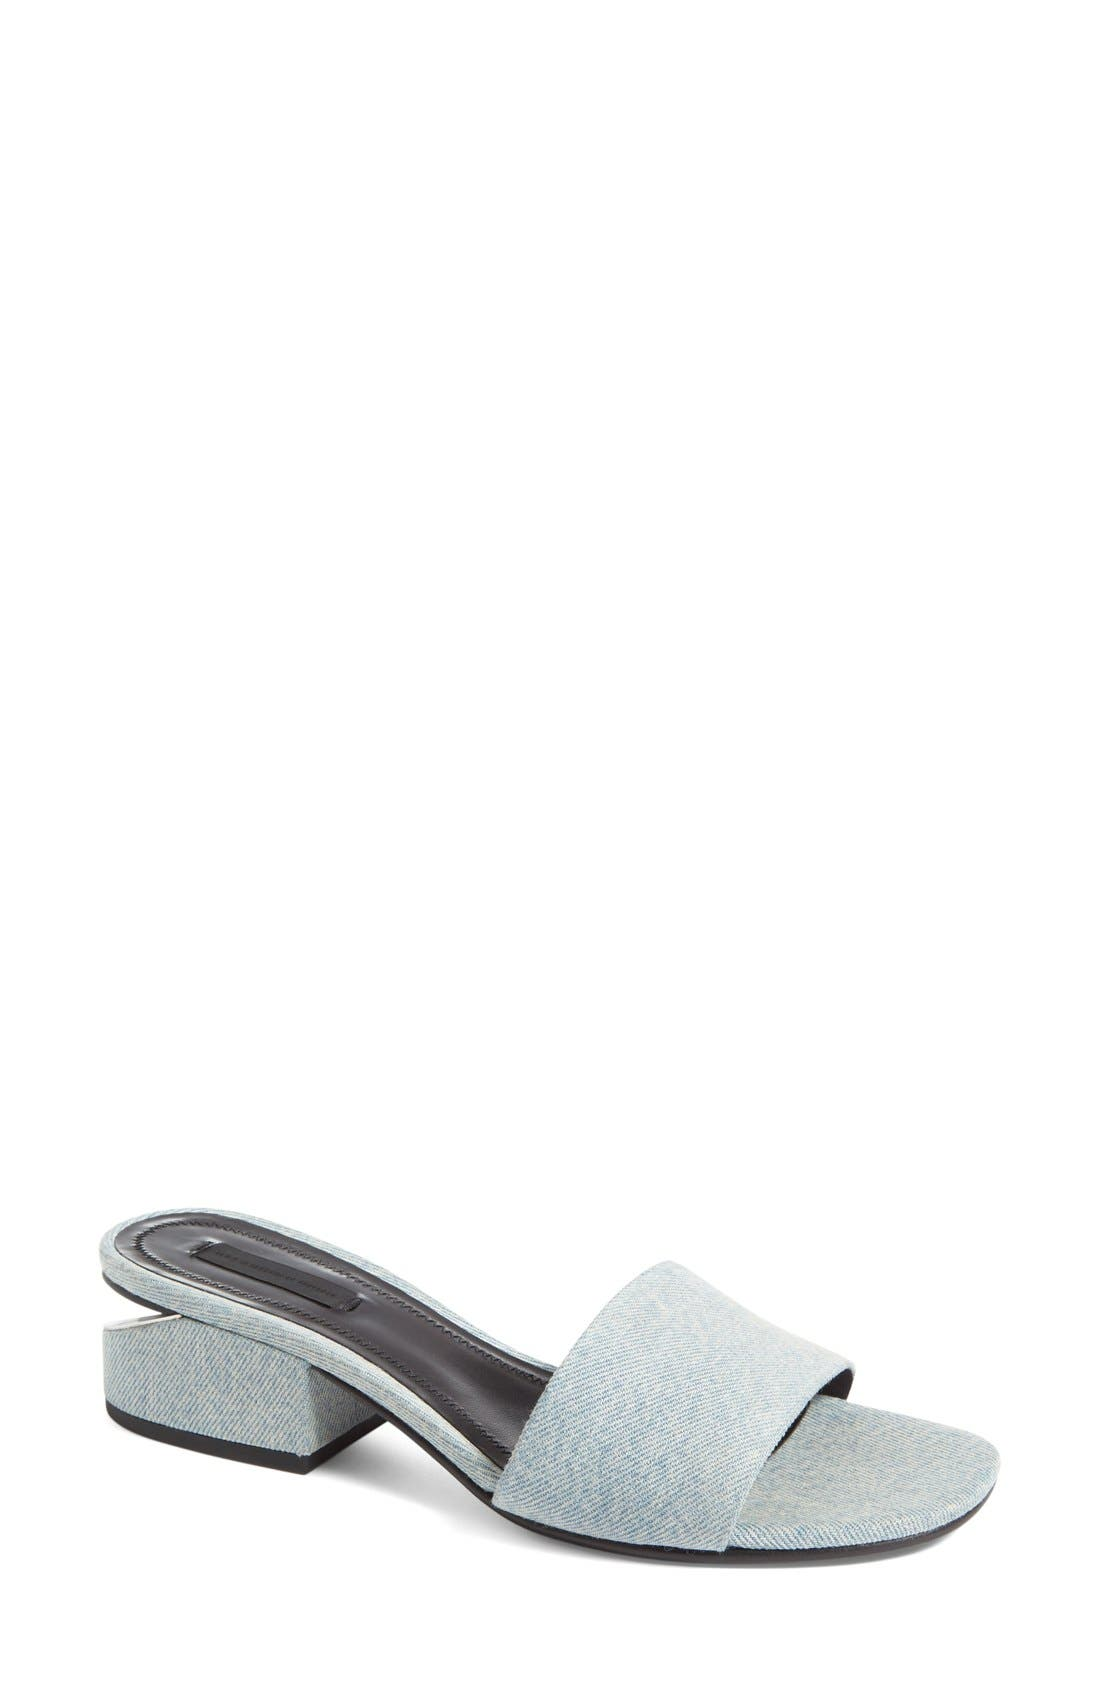 ALEXANDER WANG Hollie Slide Sandal